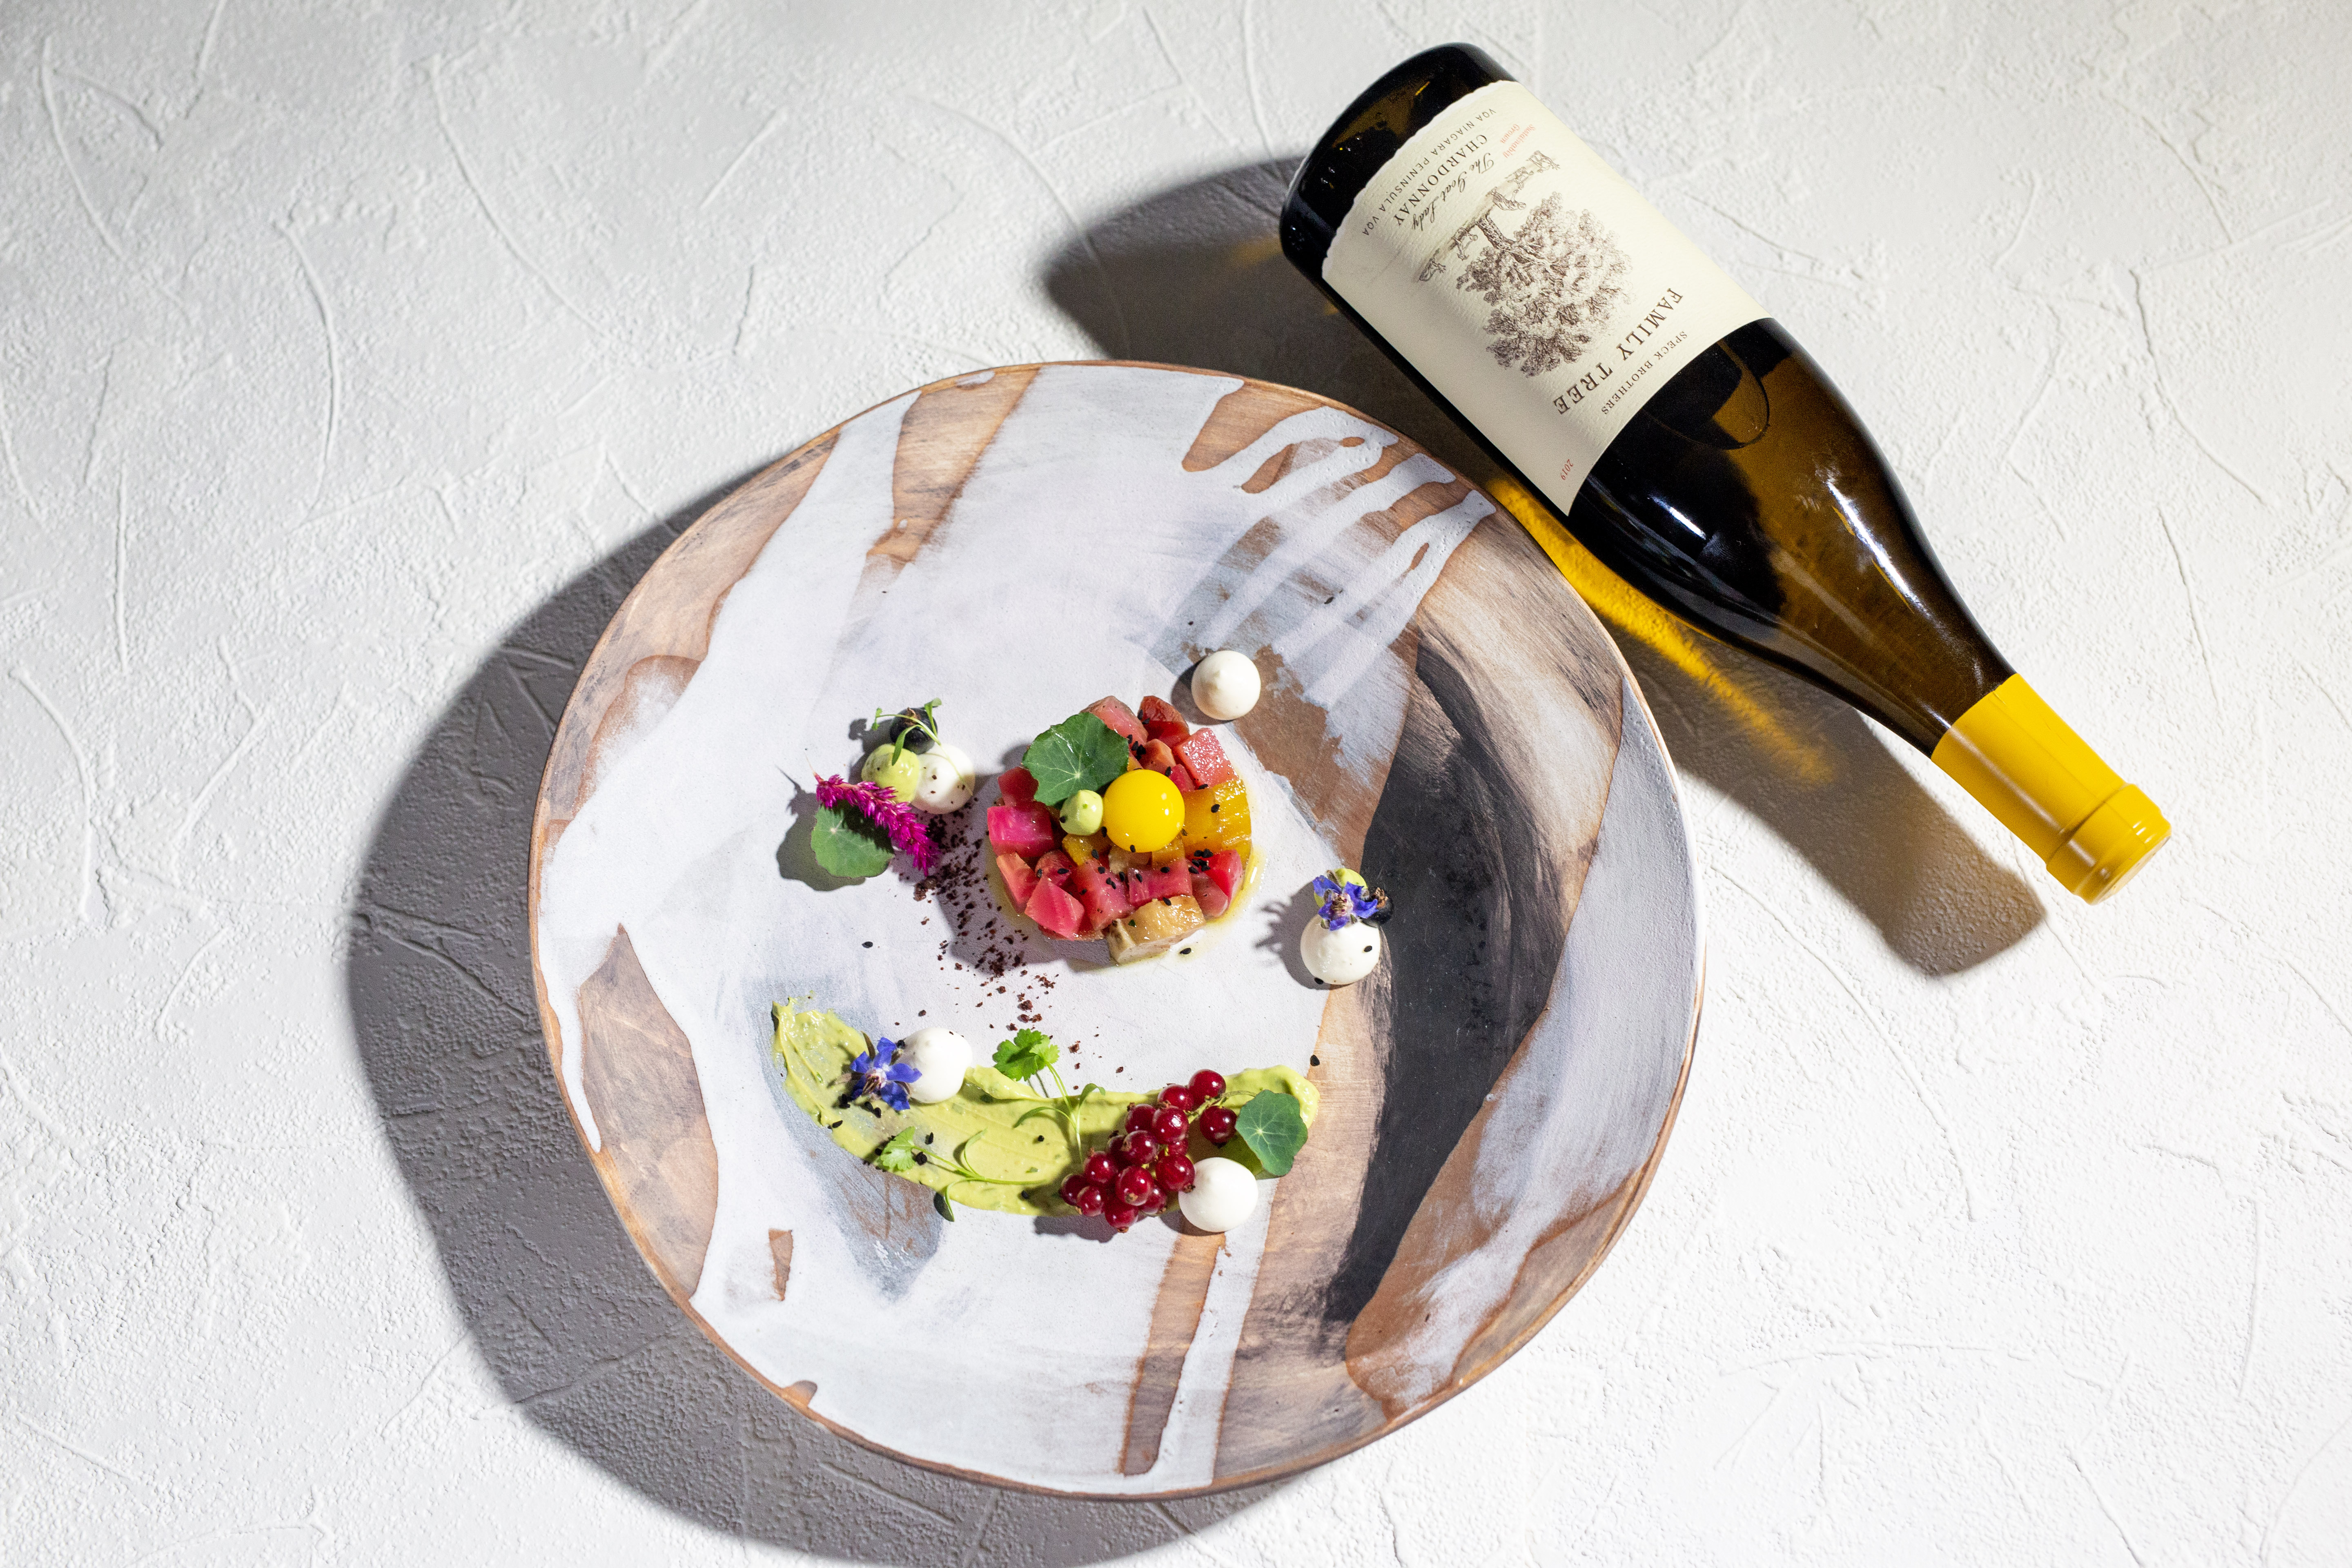 A bottle of wine and food   Cheff & Somm